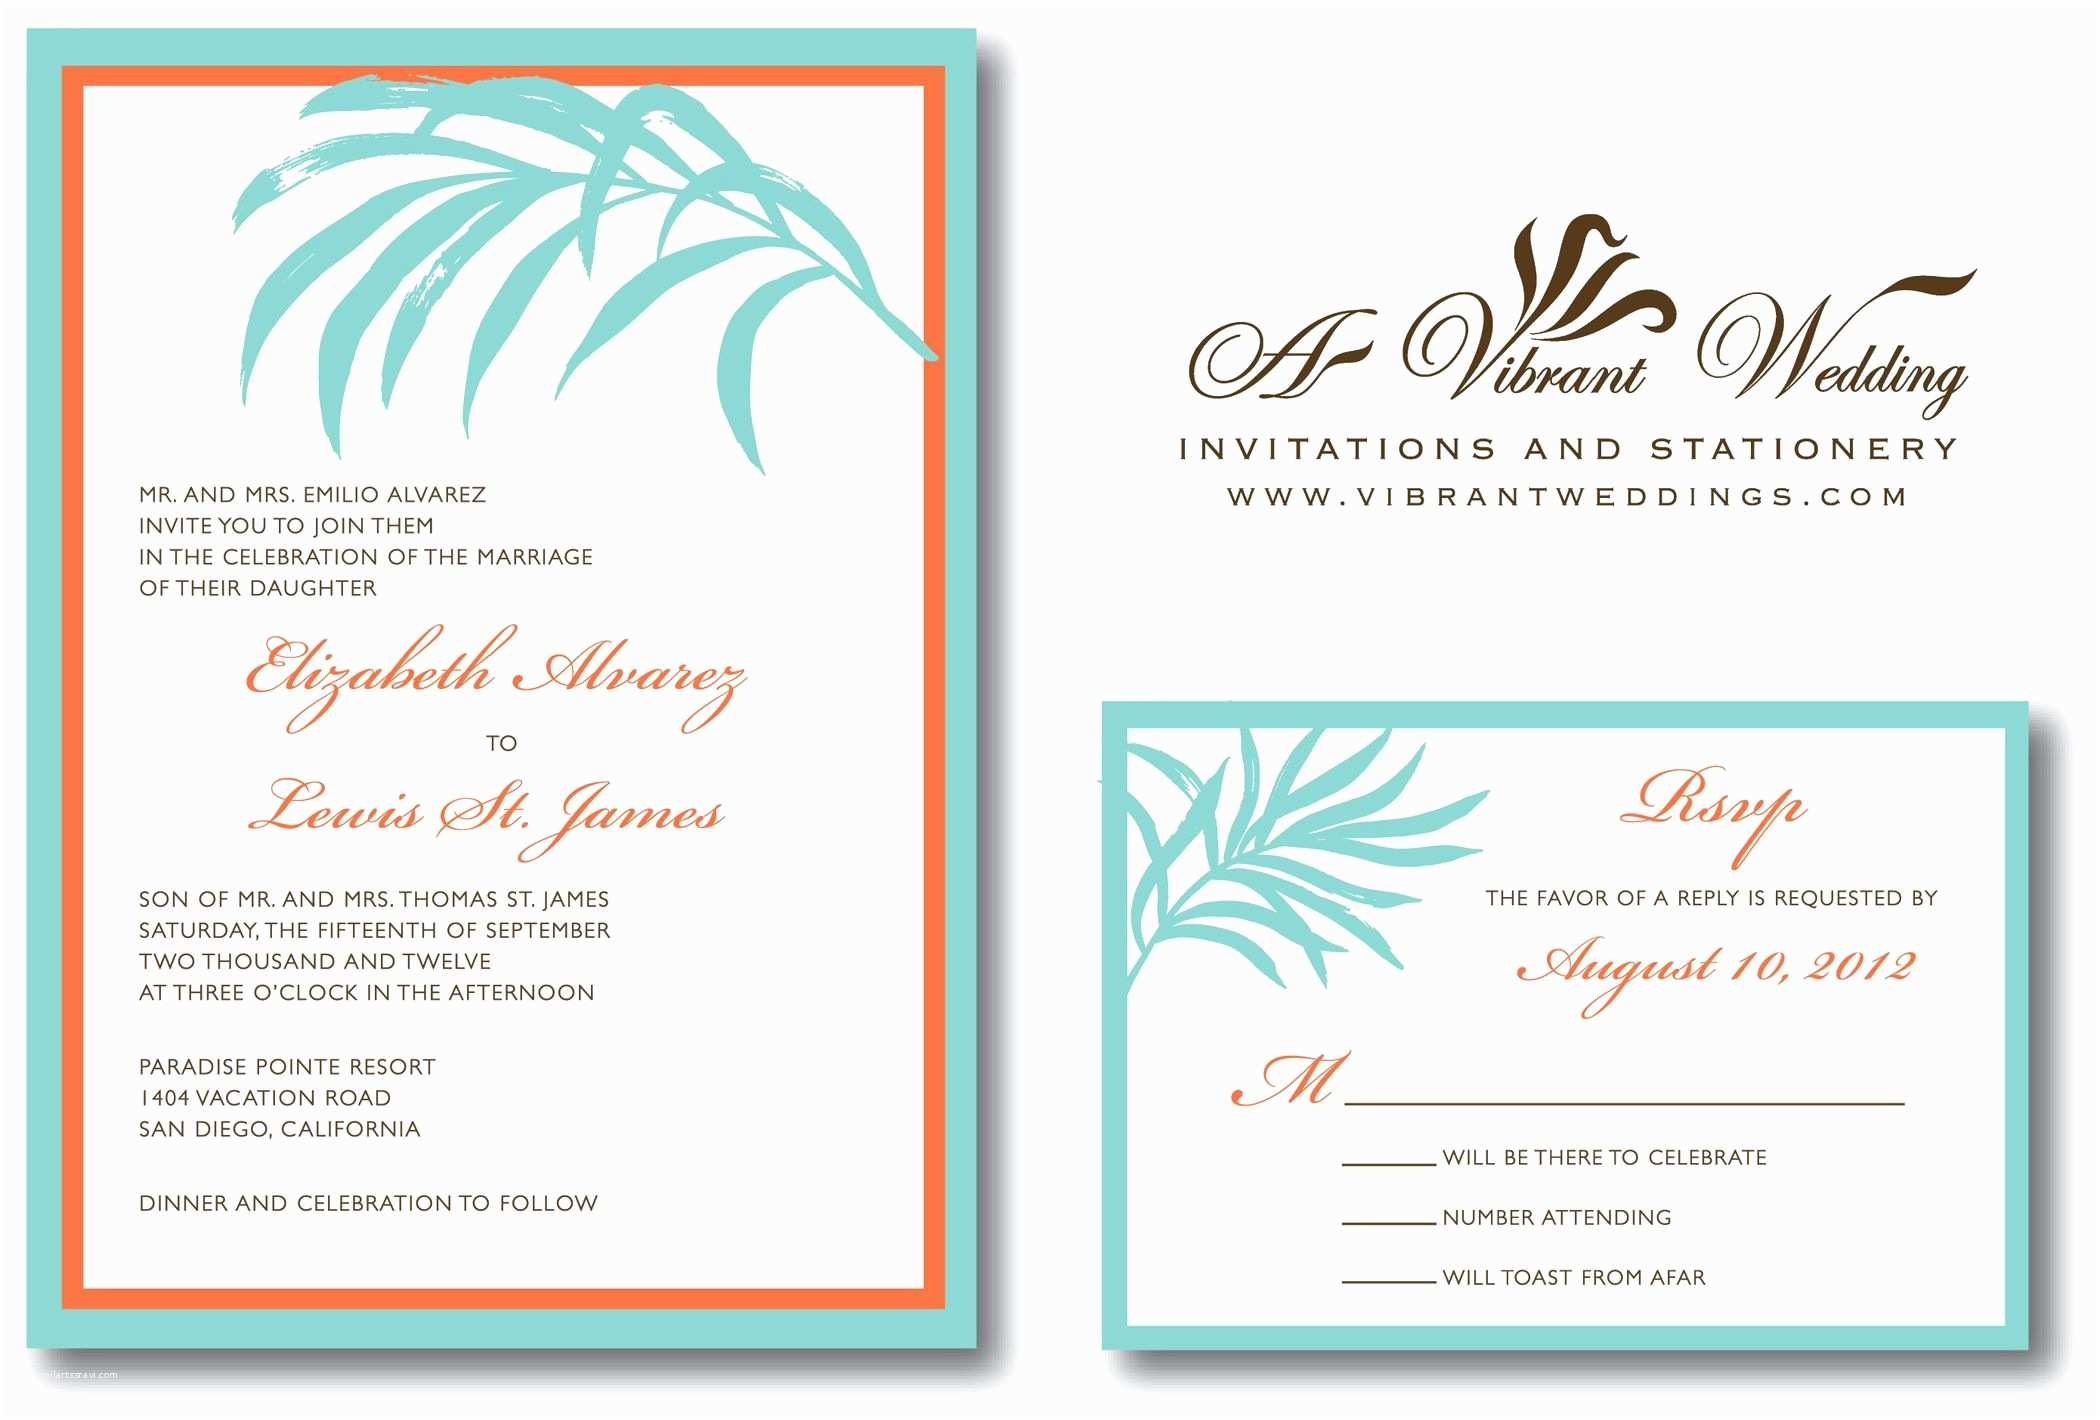 Wedding Invitation Wording Options Beach Wedding Invitation Wording